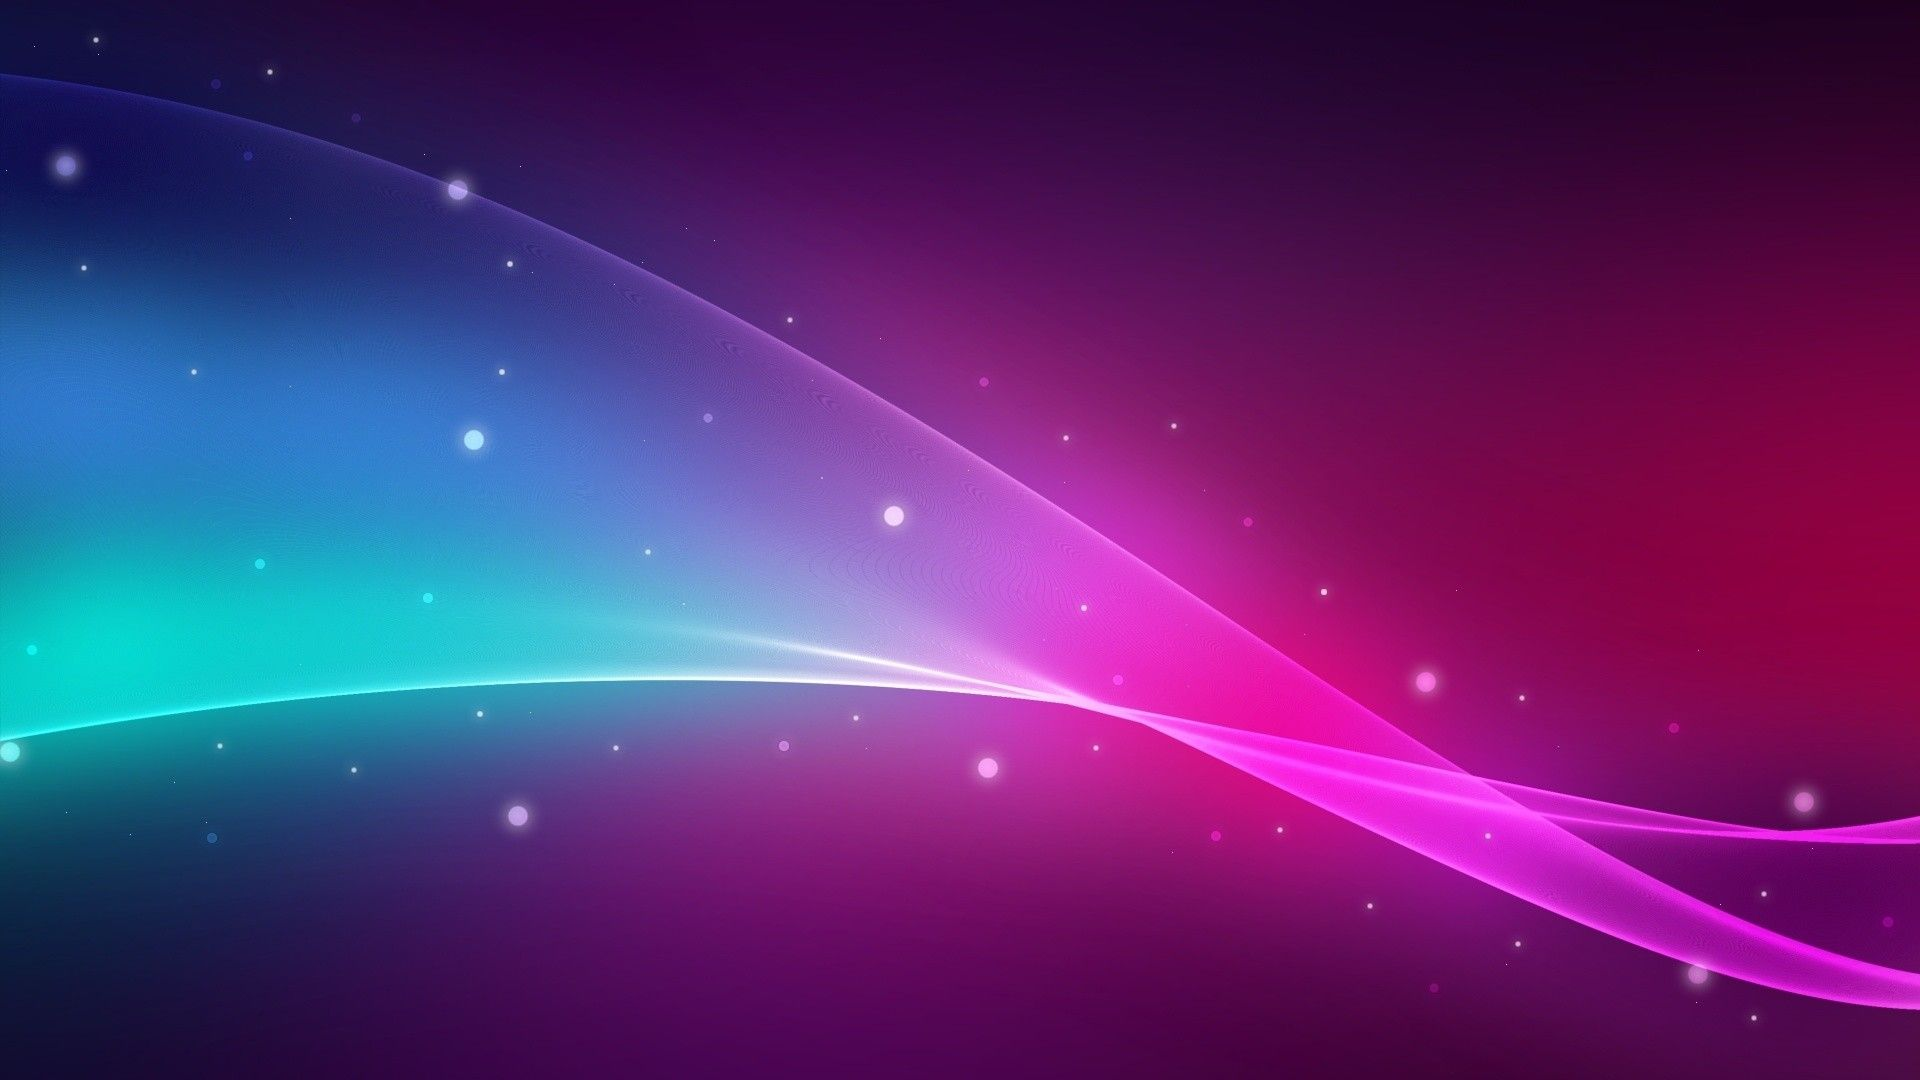 Pink Purple And Blue Backgrounds Pink And Purple Wallpaper Purple Wallpaper Purple Wallpaper Hd